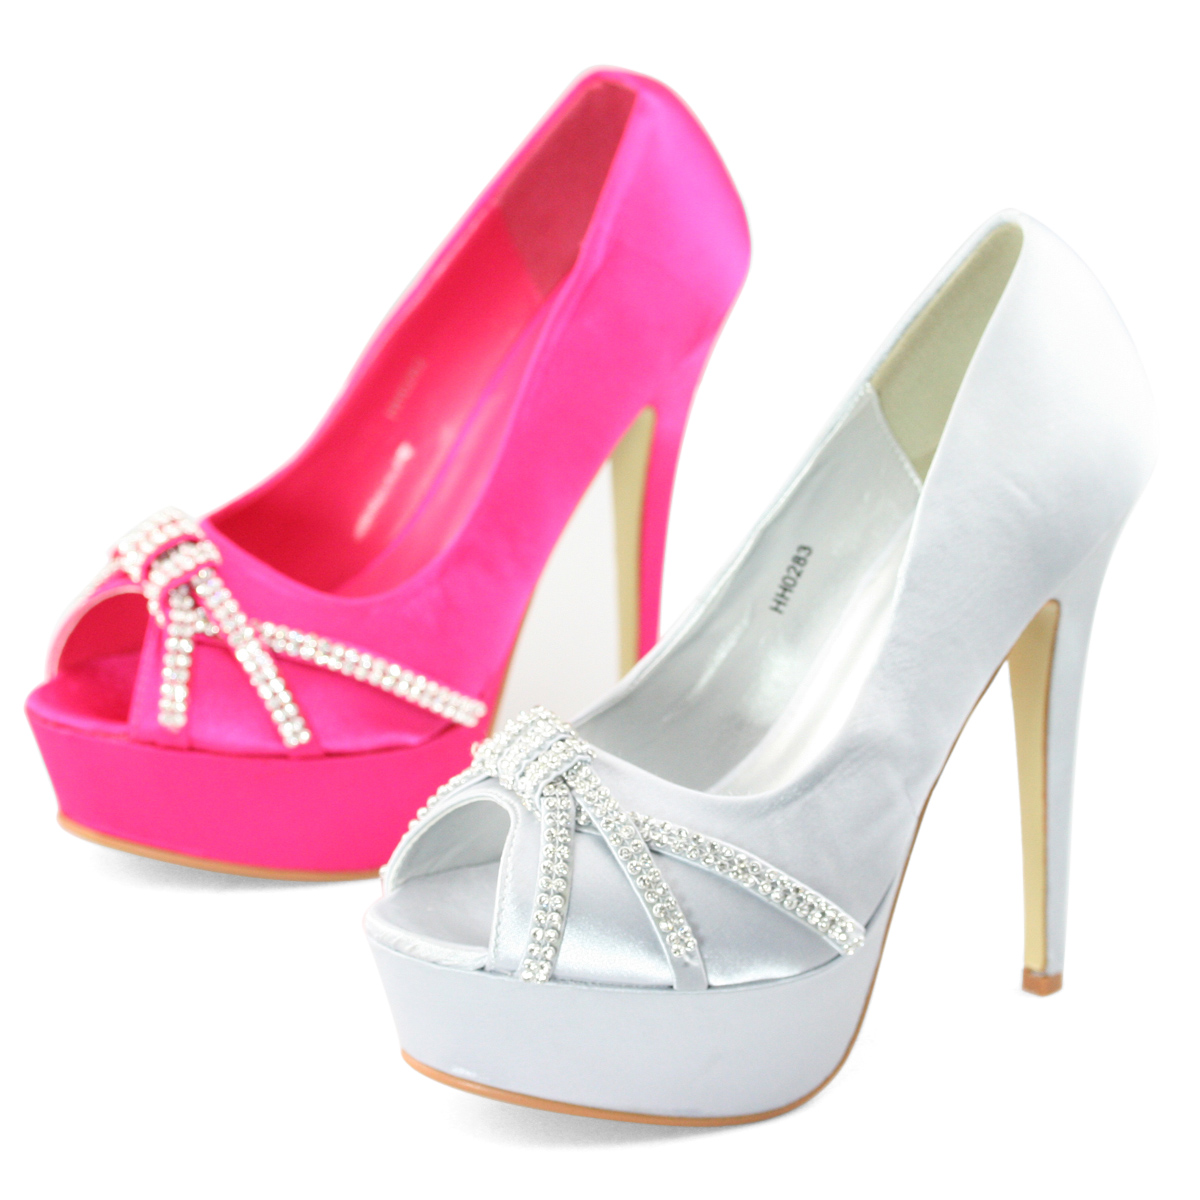 Cool Shoezy Womens Platform Pumps Wedding Bridesmaid Party Dress High Heels Shoes Ebay With Pink For